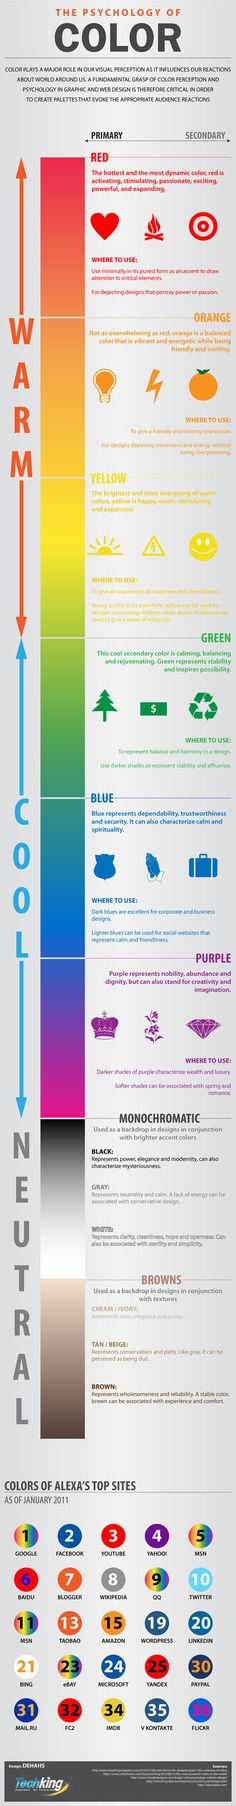 the psychology of color for designers